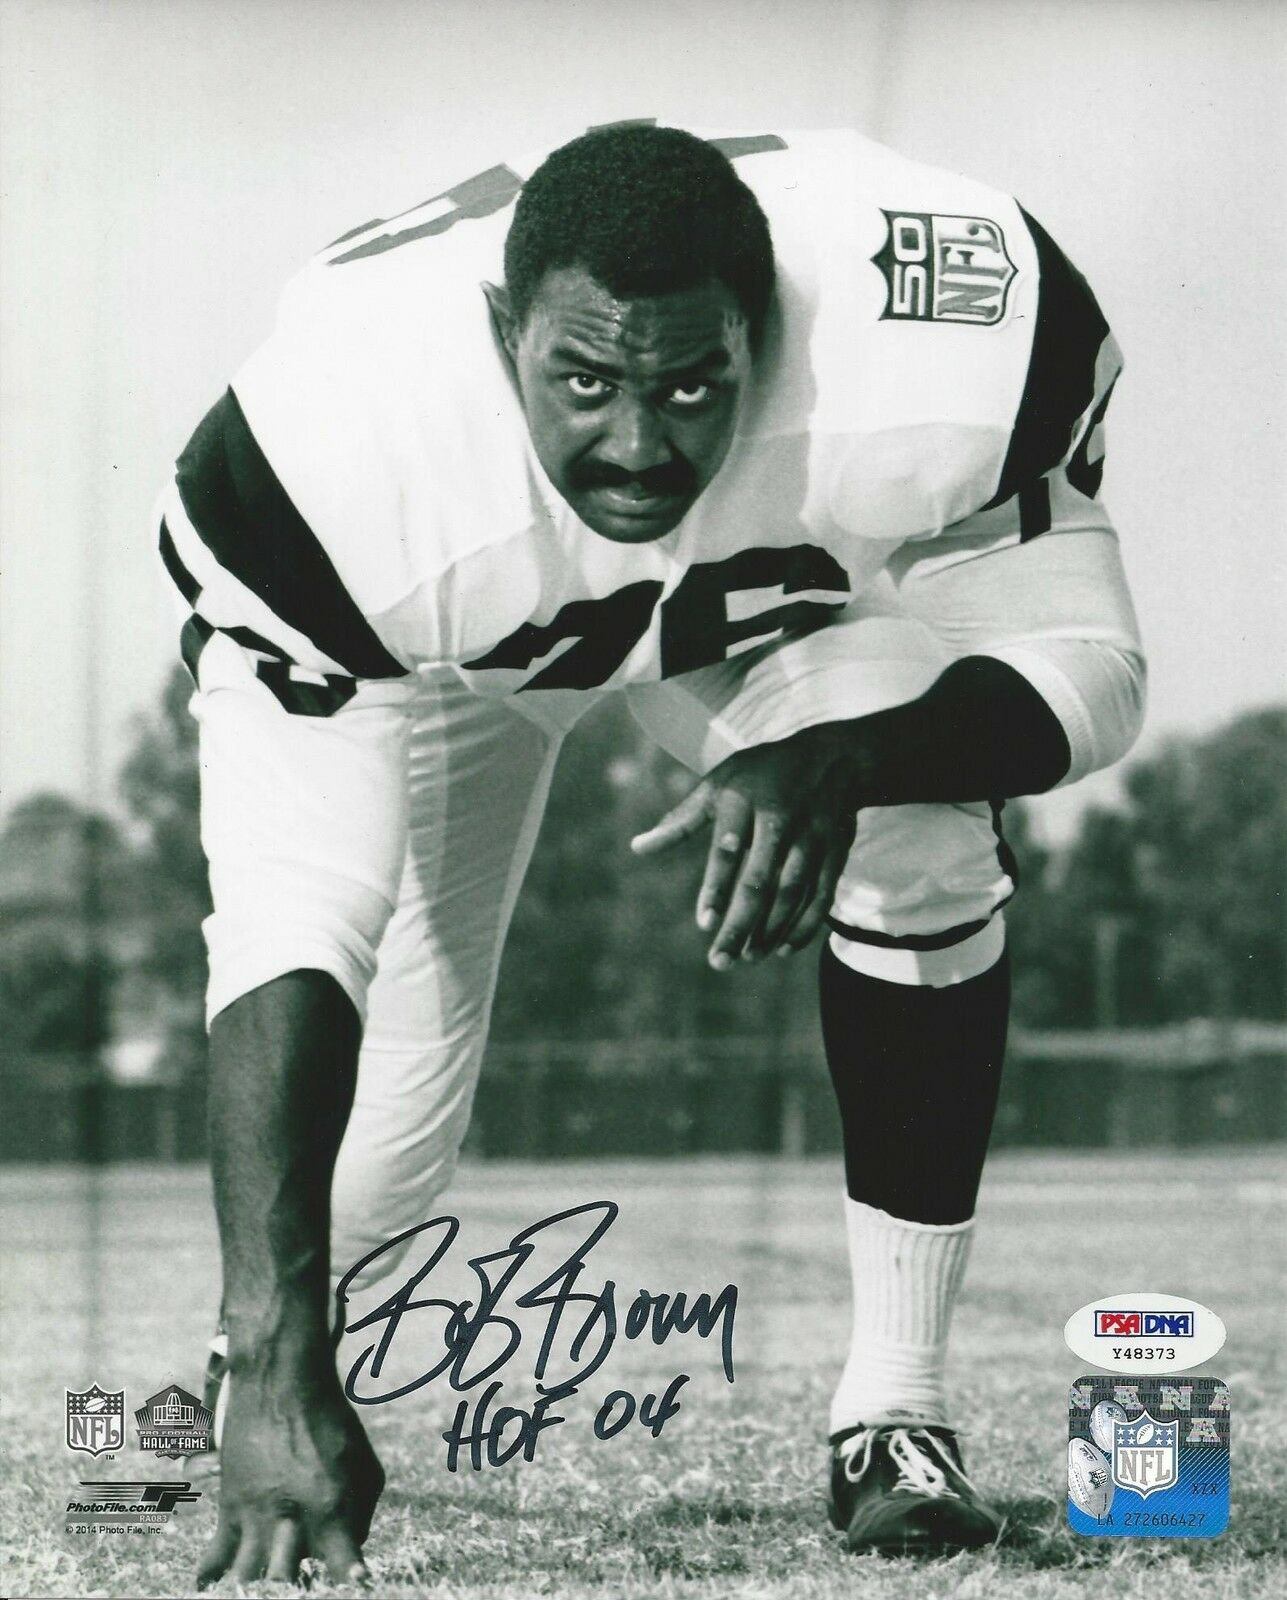 Bob Brown Los Angeles Rams Signed 8x10 Photo - PSA/DNA # Y48373